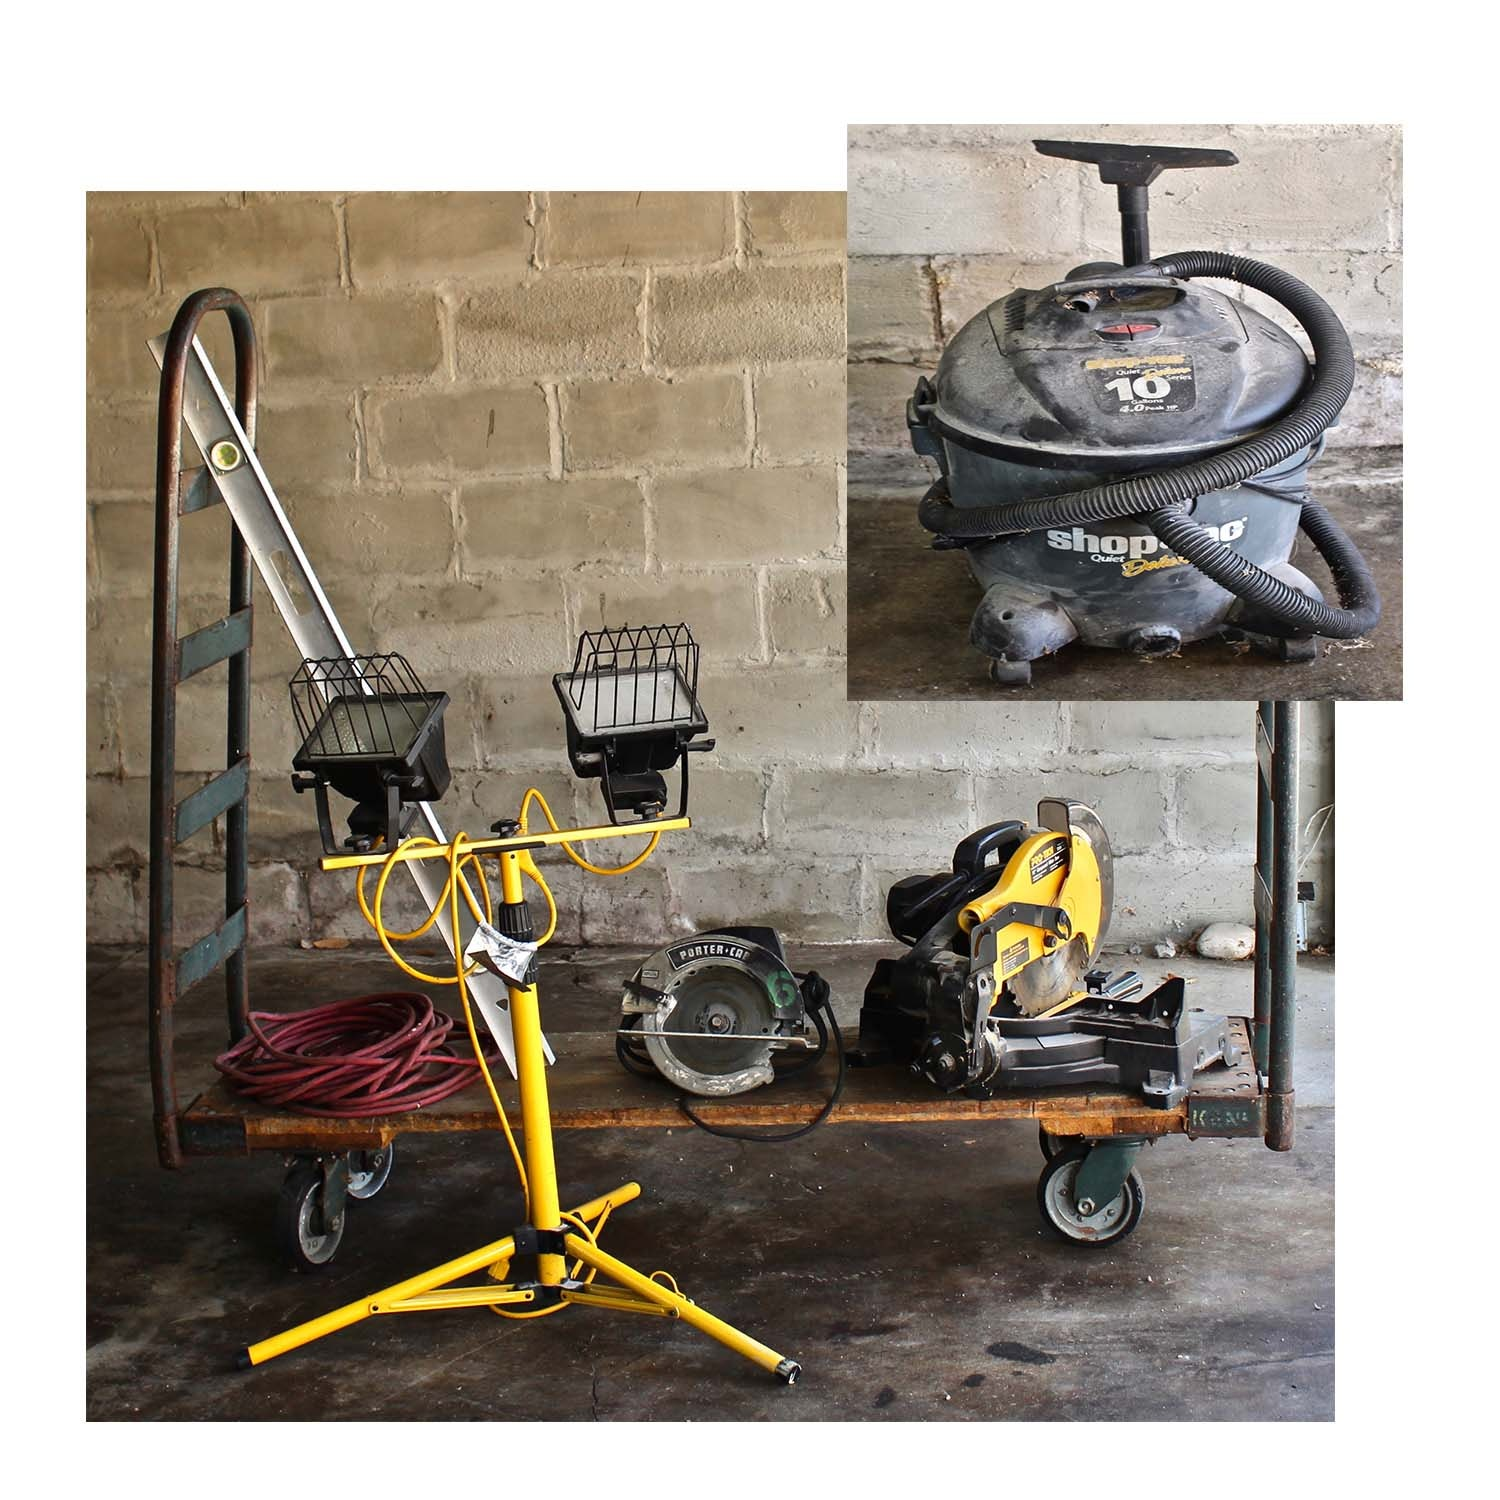 Power Tools Including Saws, Lights and Cart